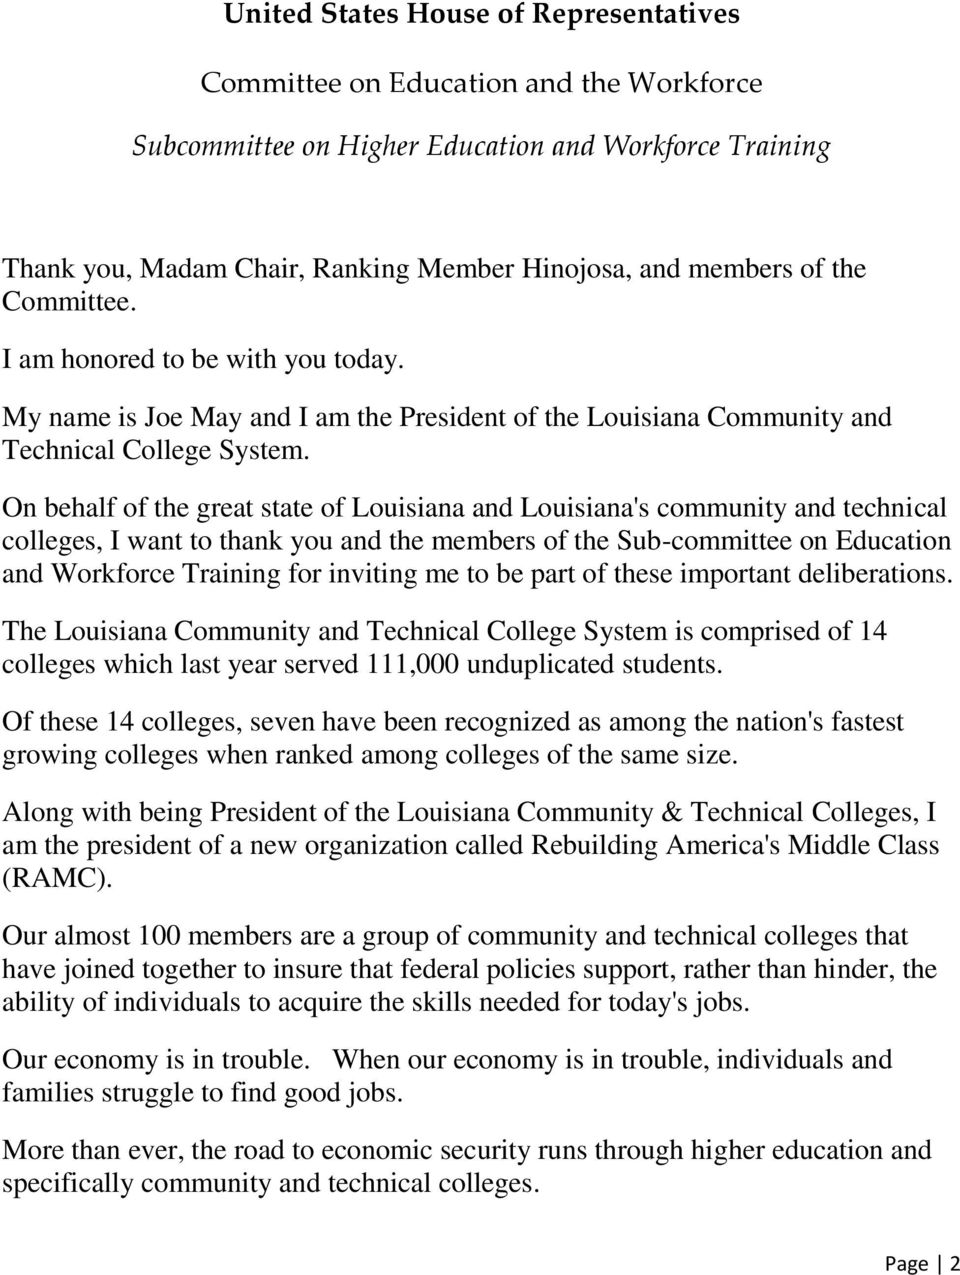 On behalf of the great state of Louisiana and Louisiana's community and technical colleges, I want to thank you and the members of the Sub-committee on Education and Workforce Training for inviting